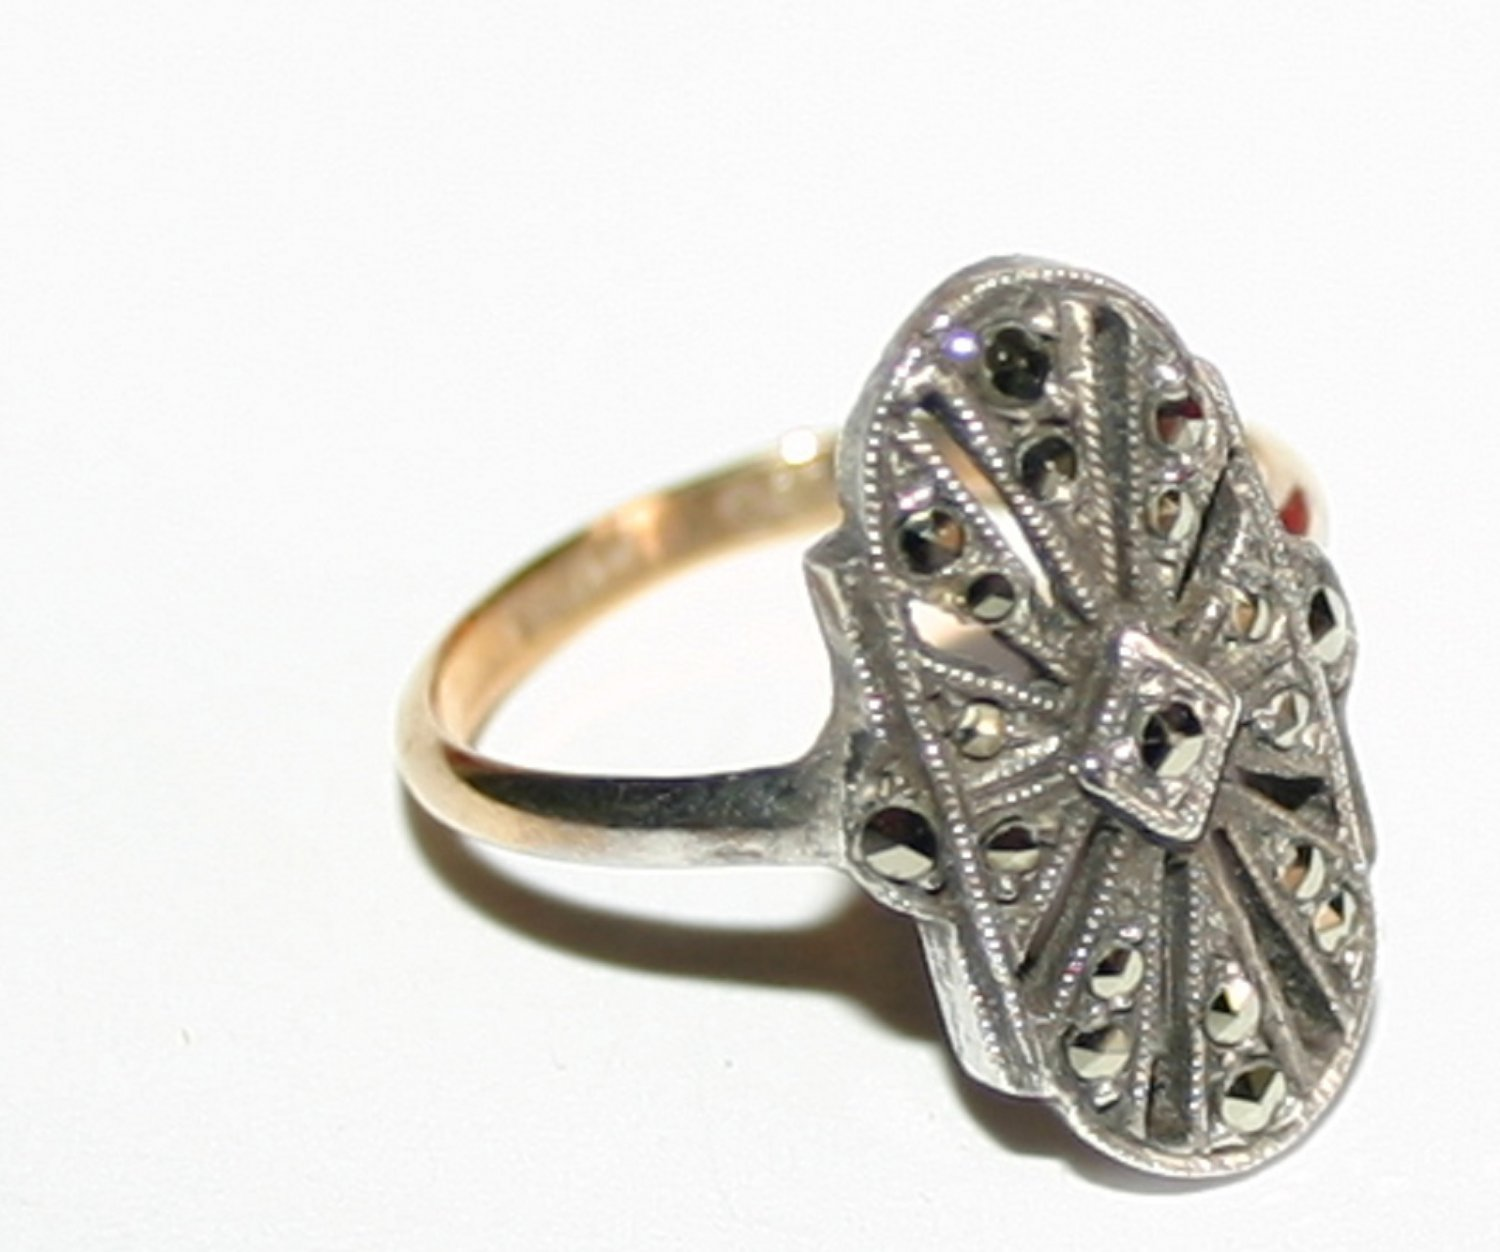 Vintage Silver Bespoke Art Deco Ring With Stones